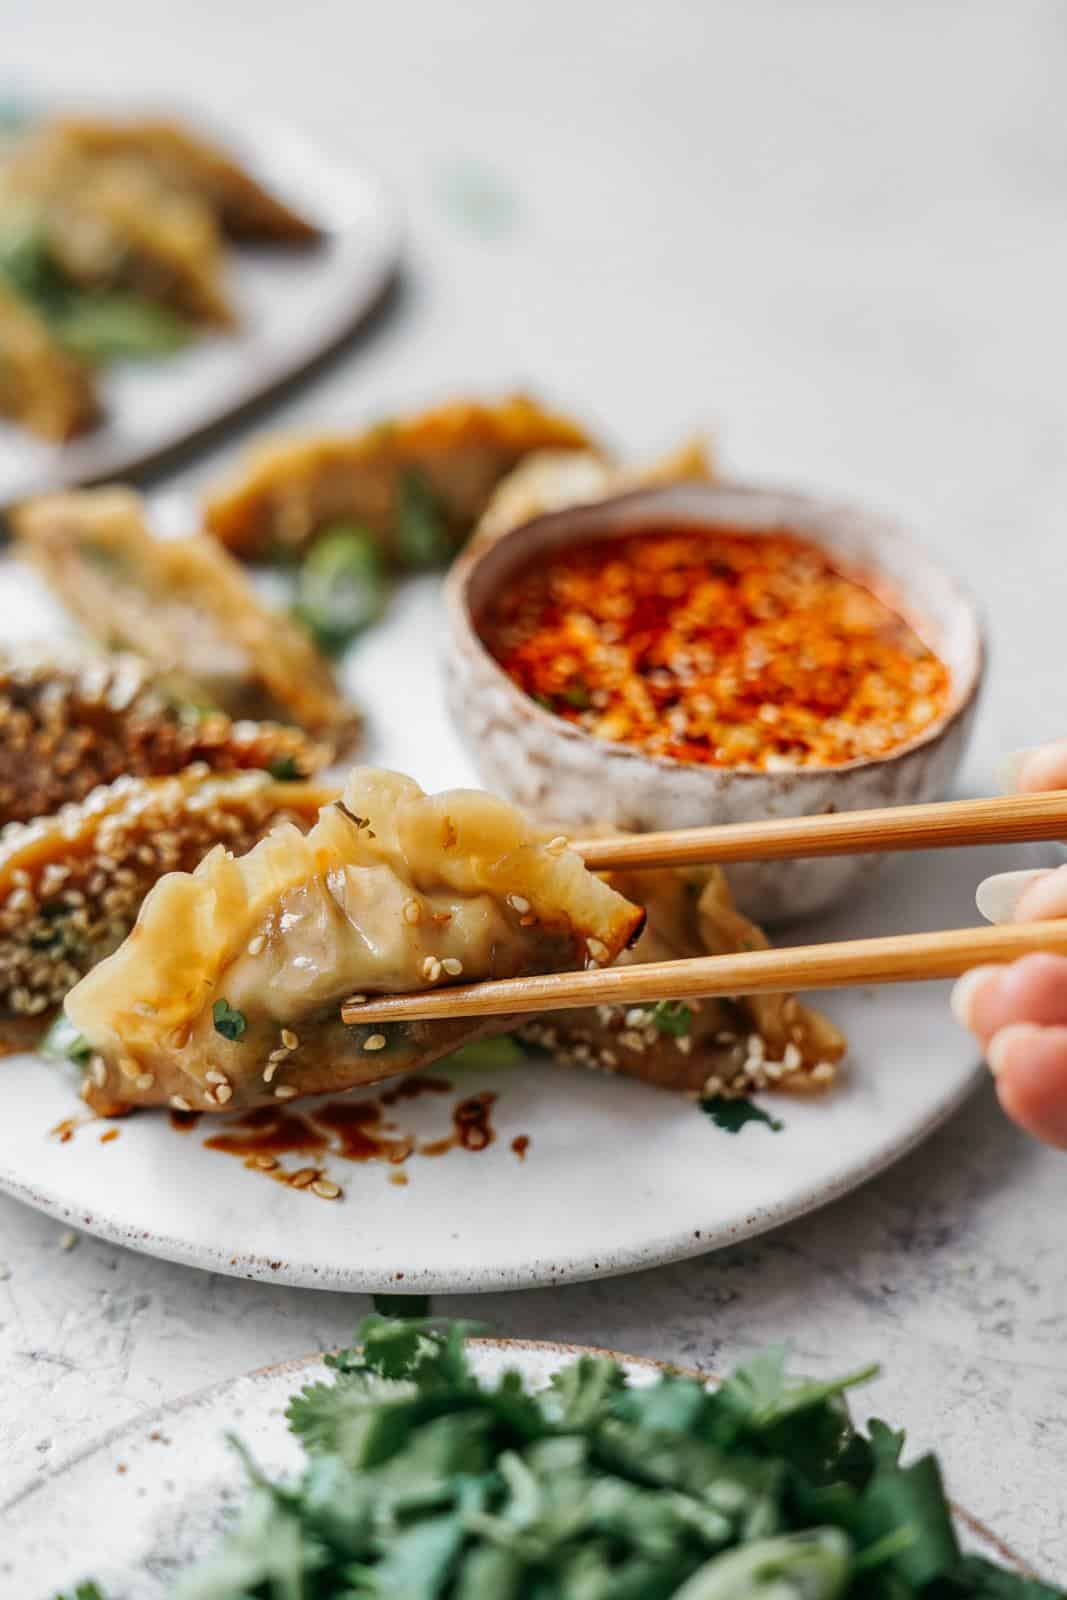 Plate of vegan dumplings with person reaching for one with chopsticks.